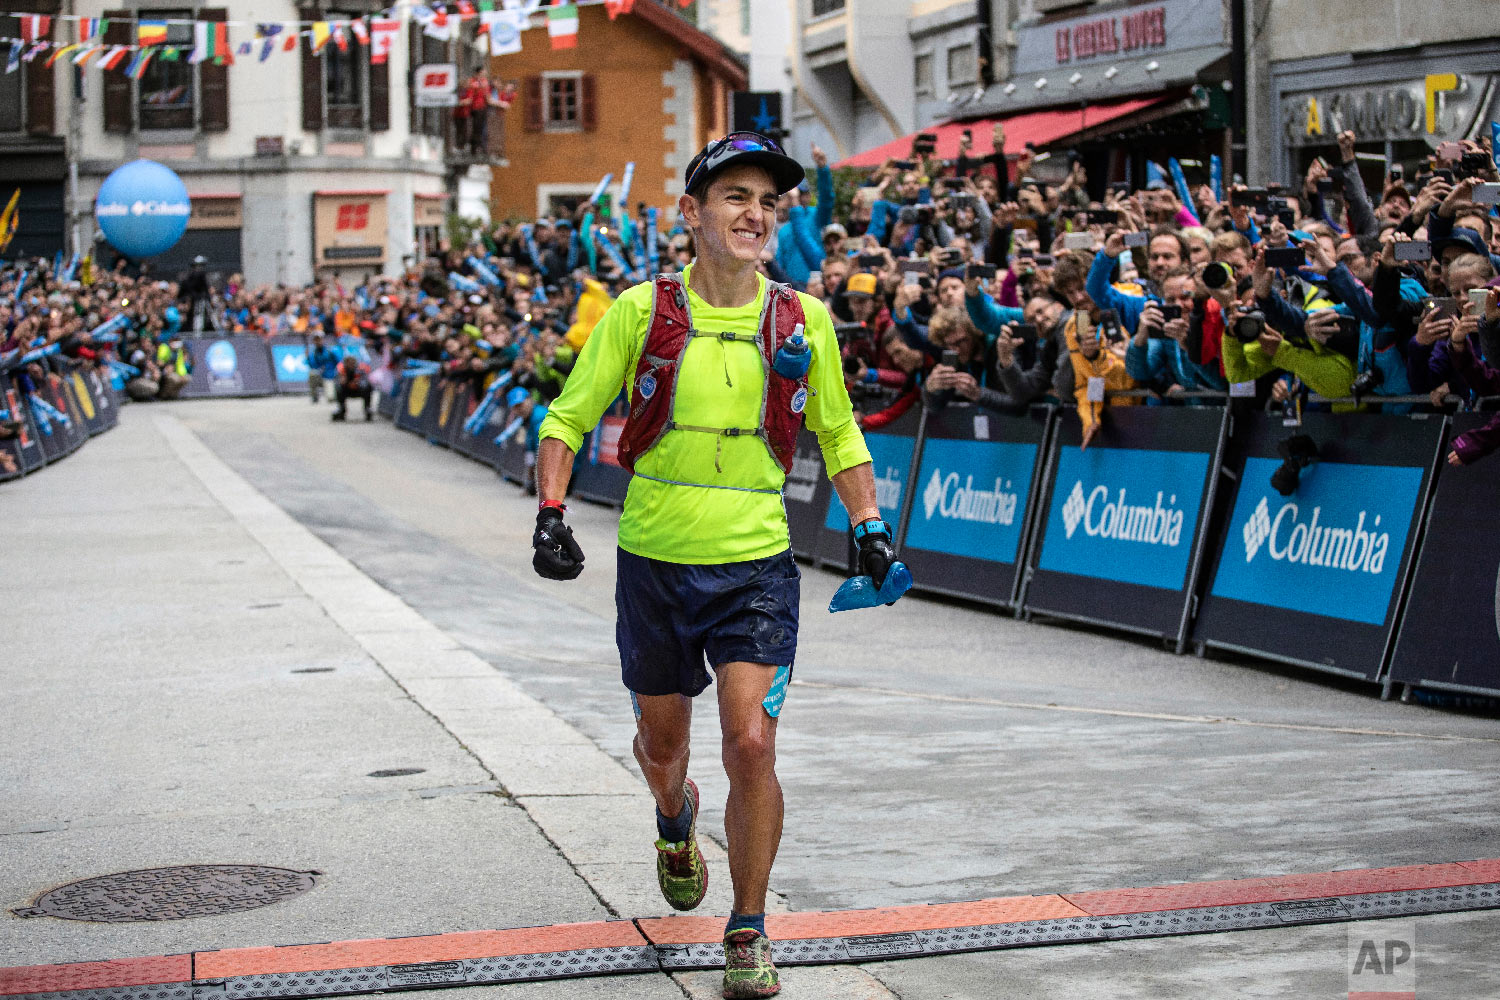 Xavier Thevenard, of France, reacts as he crosses the finish line to win the 170km Ultra-Trail of Mont-Blanc (UTMB), in the center of Chamonix, French Alps, Sept 1, 2018. (AP Photo/Laurent Cipriani)